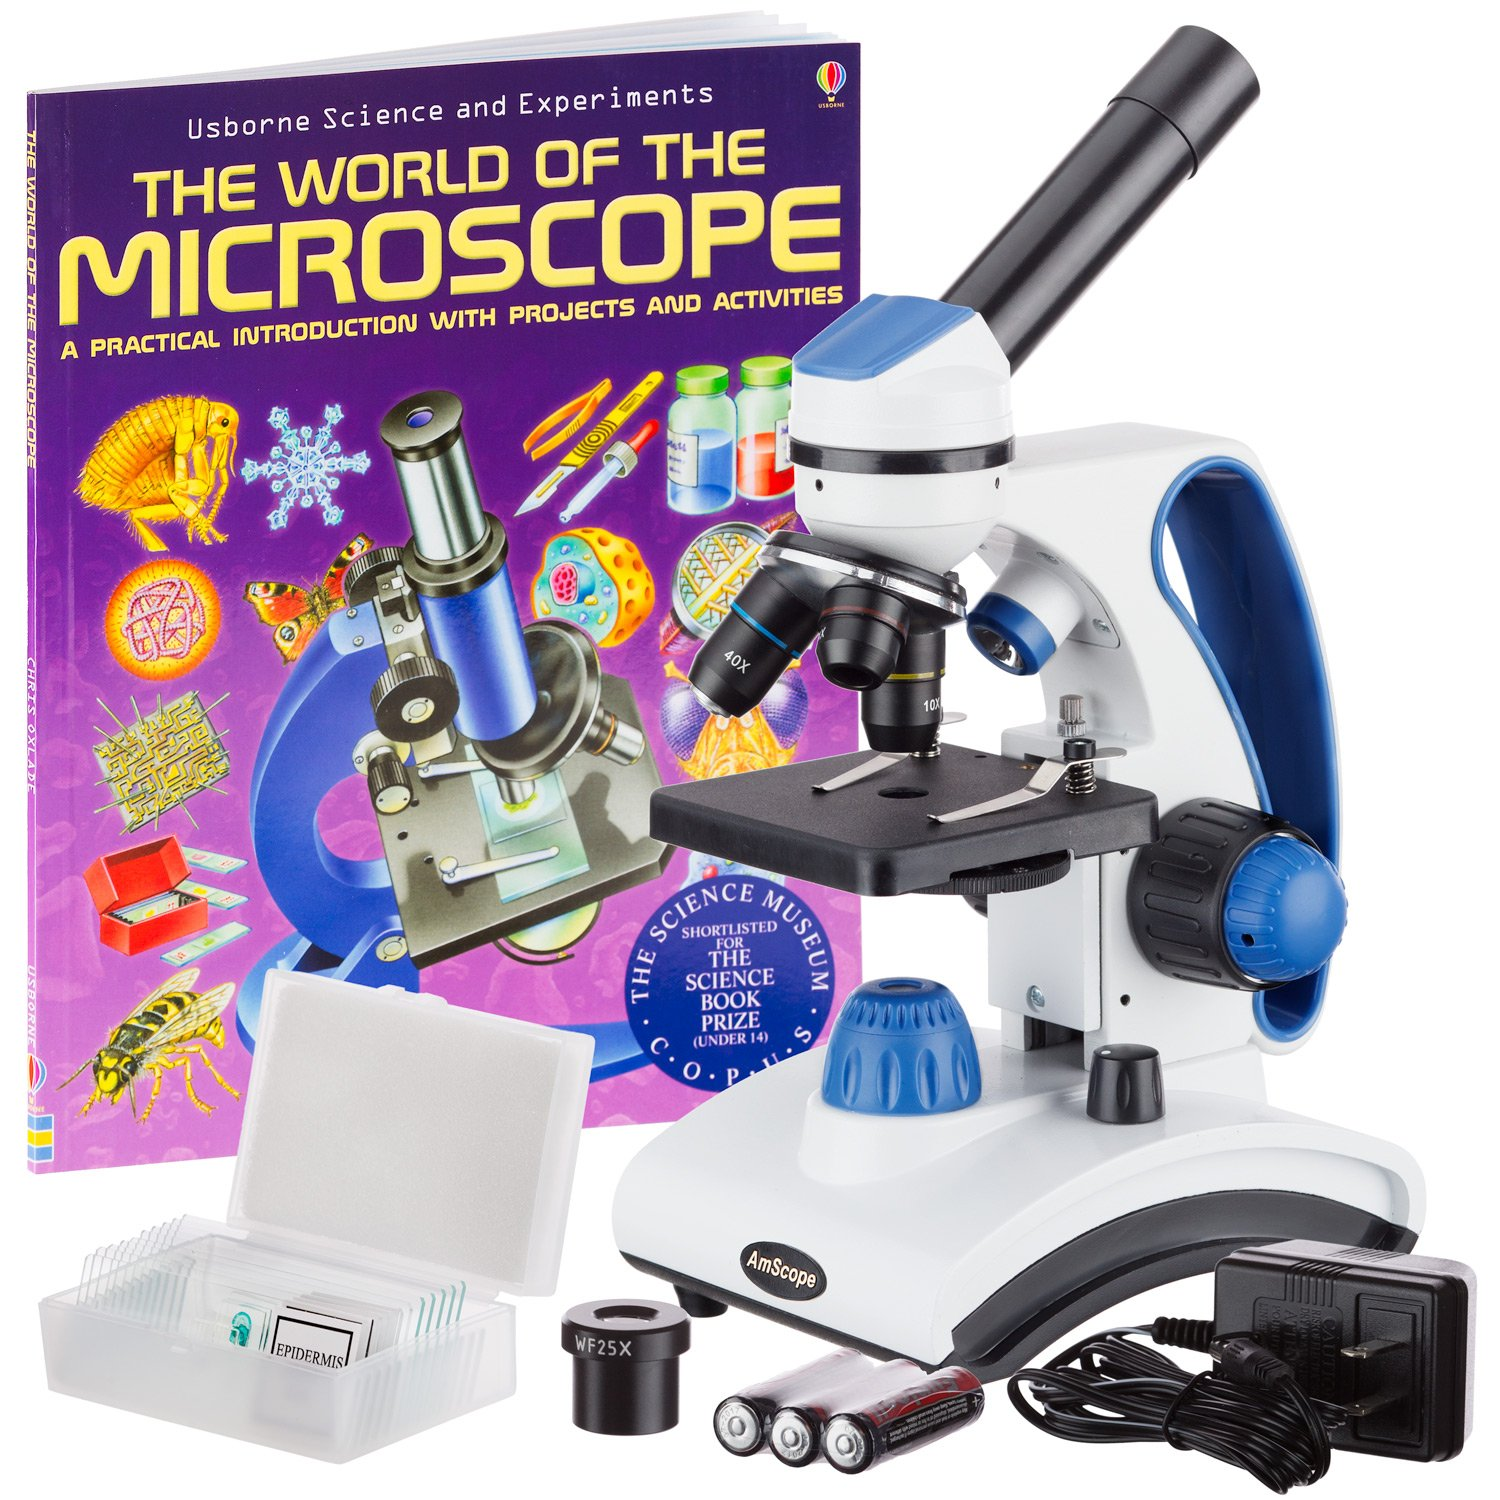 AmScope AWARDED 2016 BEST STUDENT MICROSCOPE 40X-1000X Dual Light Glass Lens All-Metal Frame Student Microscope with Slides and Book by AmScope